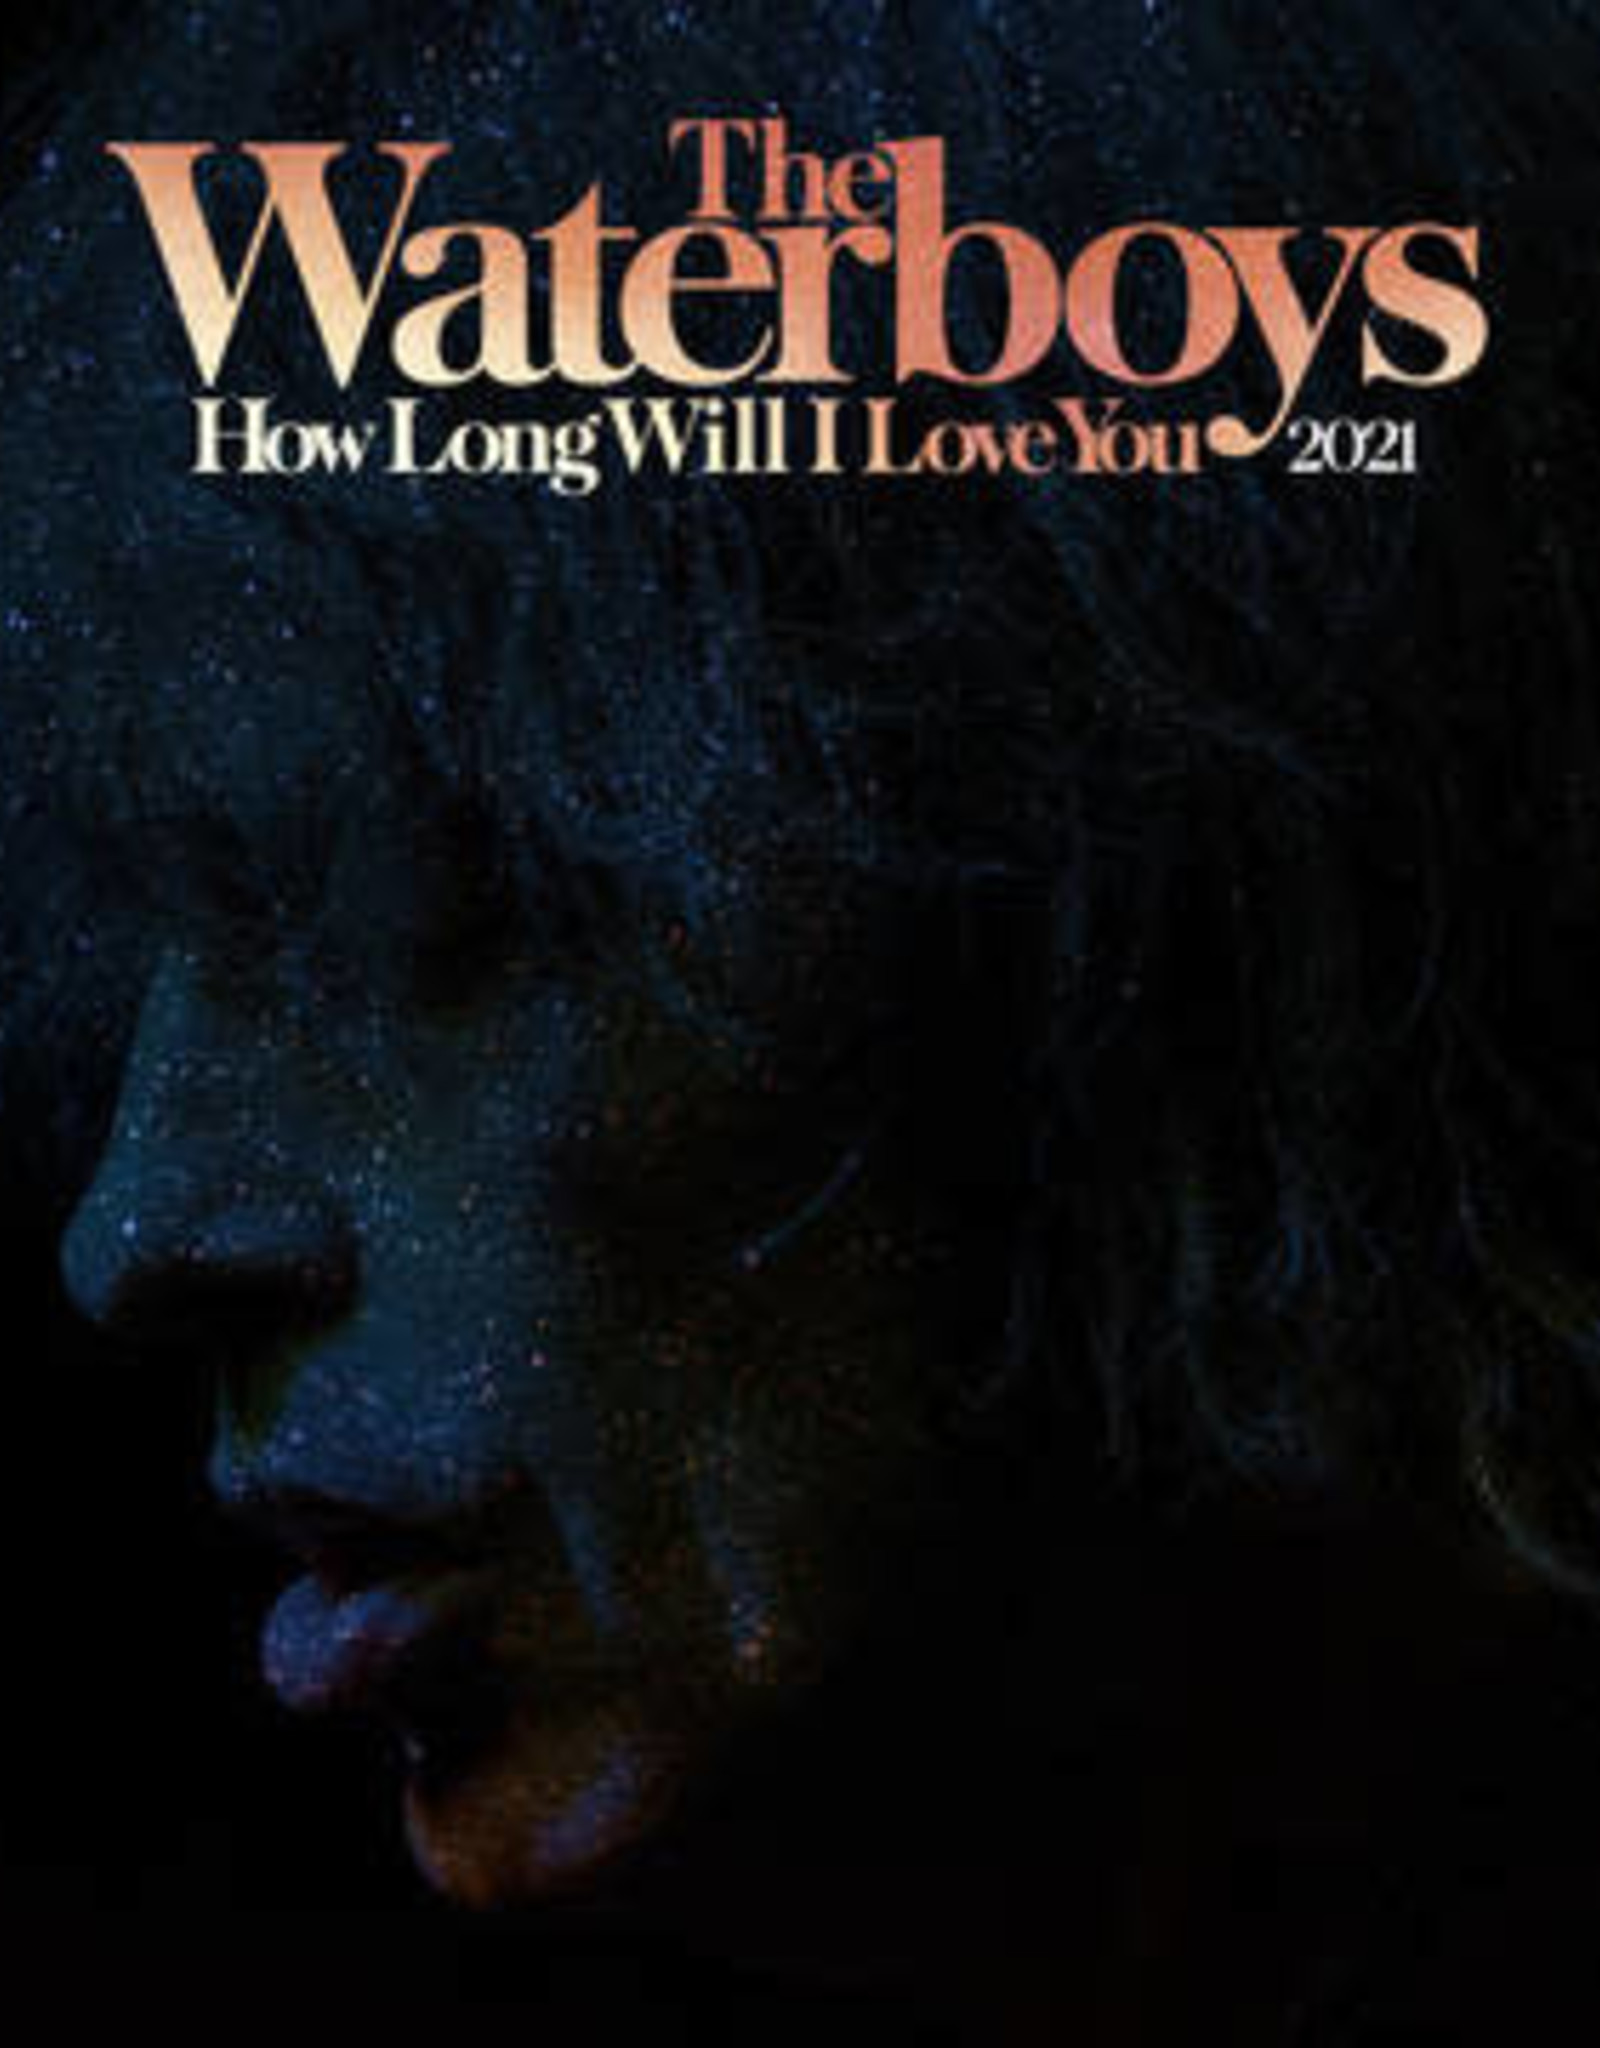 The Waterboys - How Long Will I Love You (2021 Remix)(RSD 7/21)